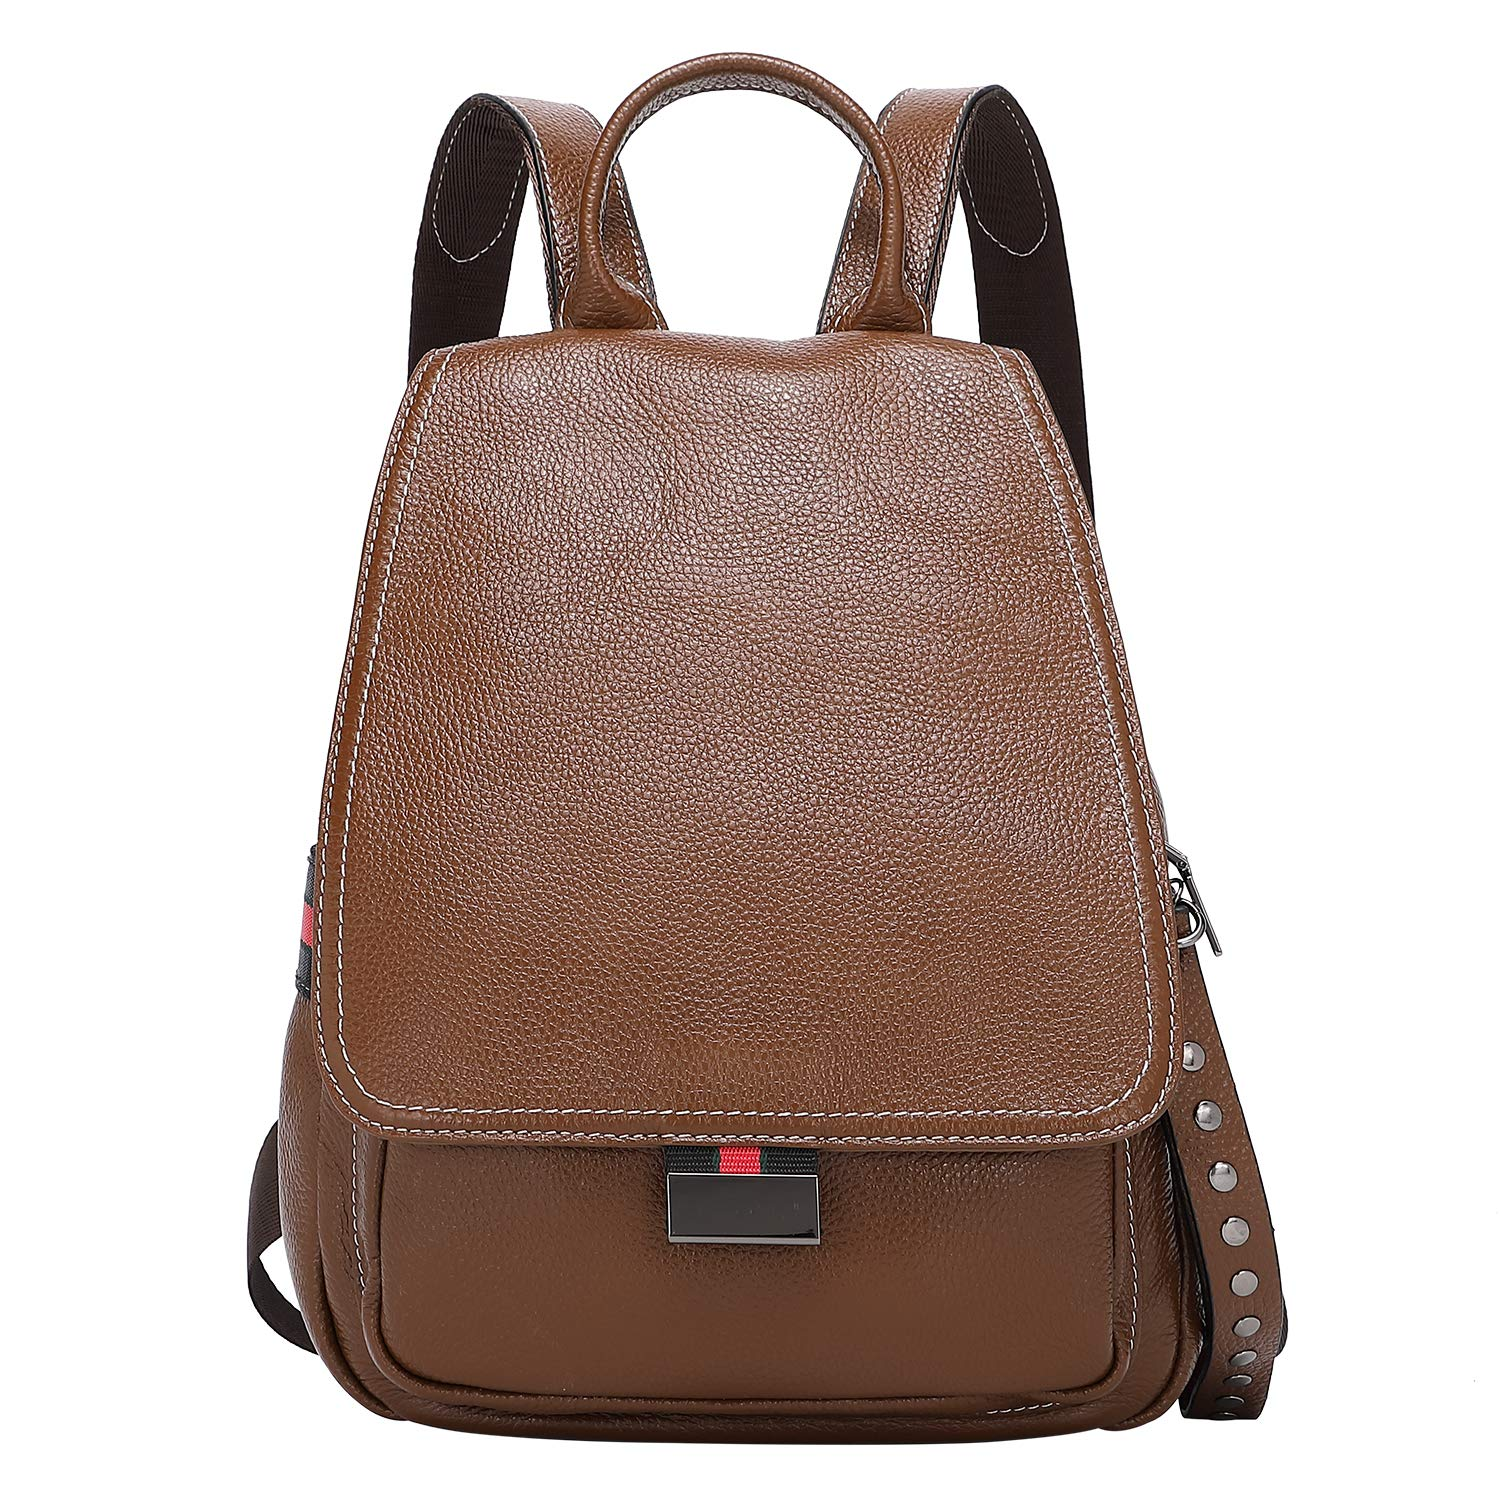 ALTOSY Fashion Leather Backpack Purse Leather College Bag Casual Travel Daypack